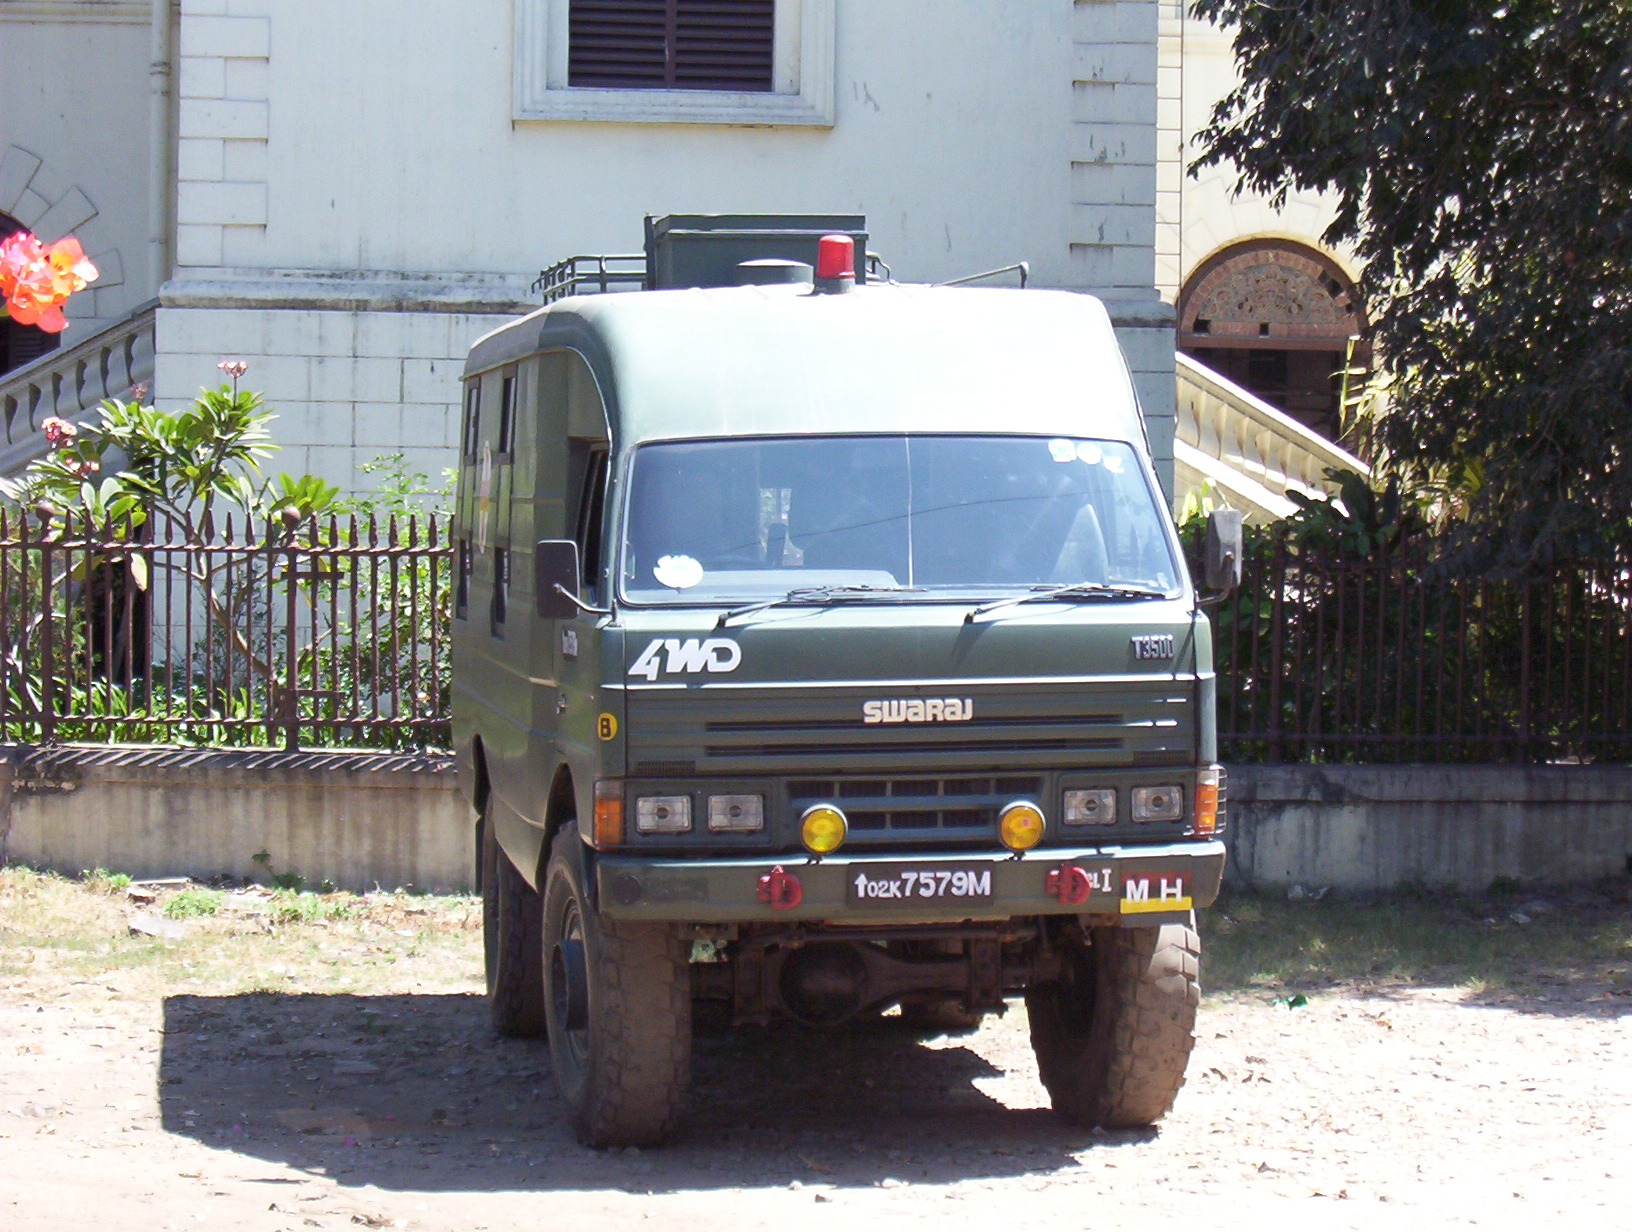 File:India army SwarajT3500 2007 front.JPG